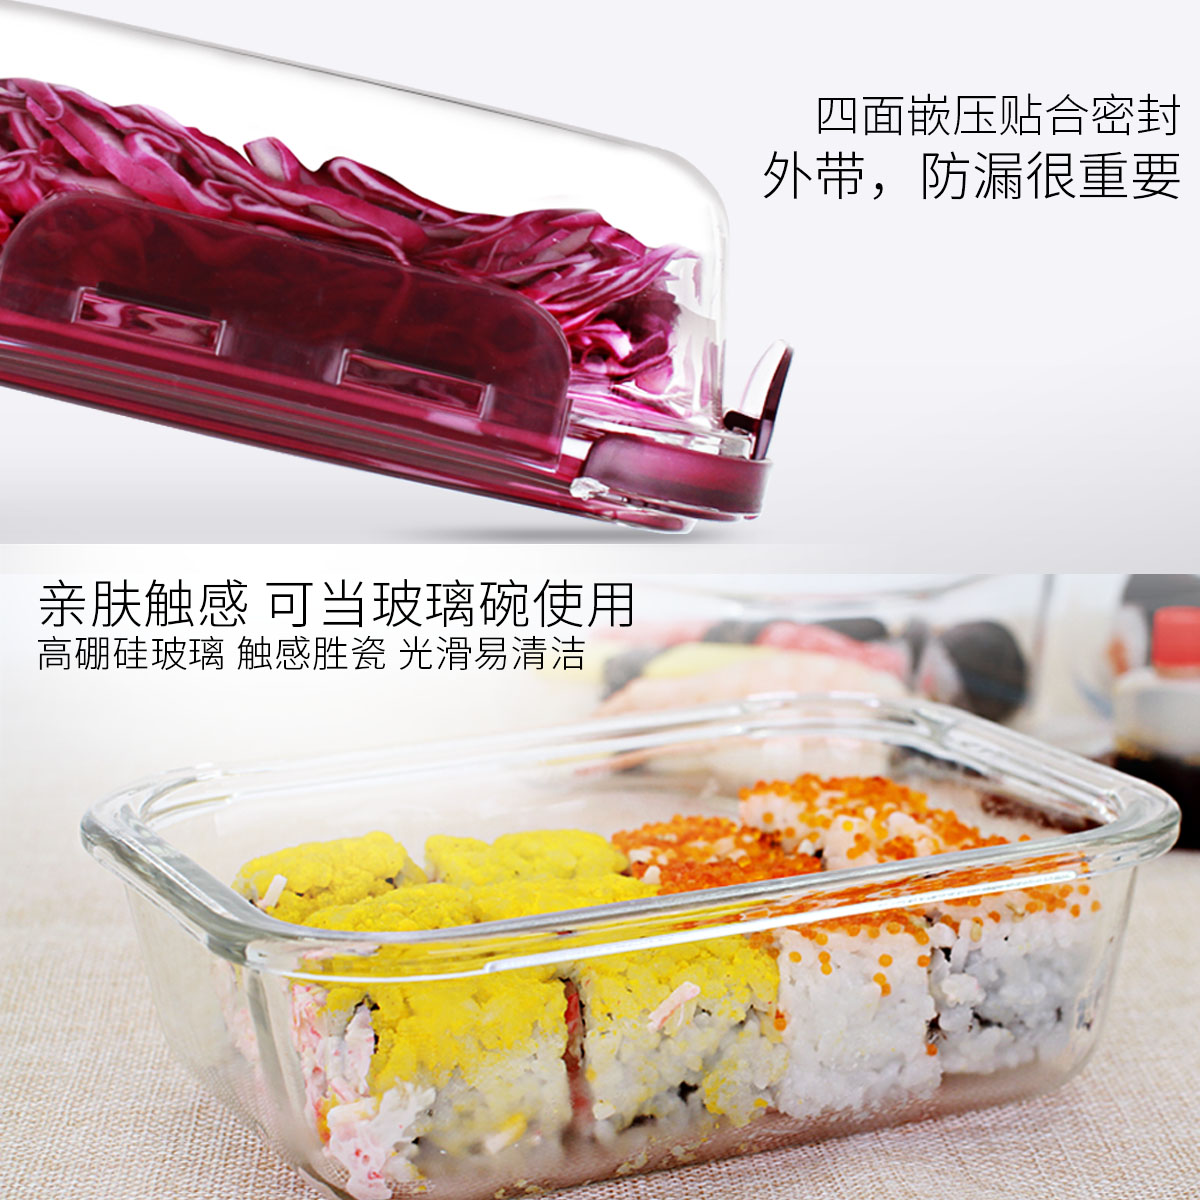 Special heating lunch box for microwave oven of office worker with rice preservation bowl and ceramic heat-resistant glass box